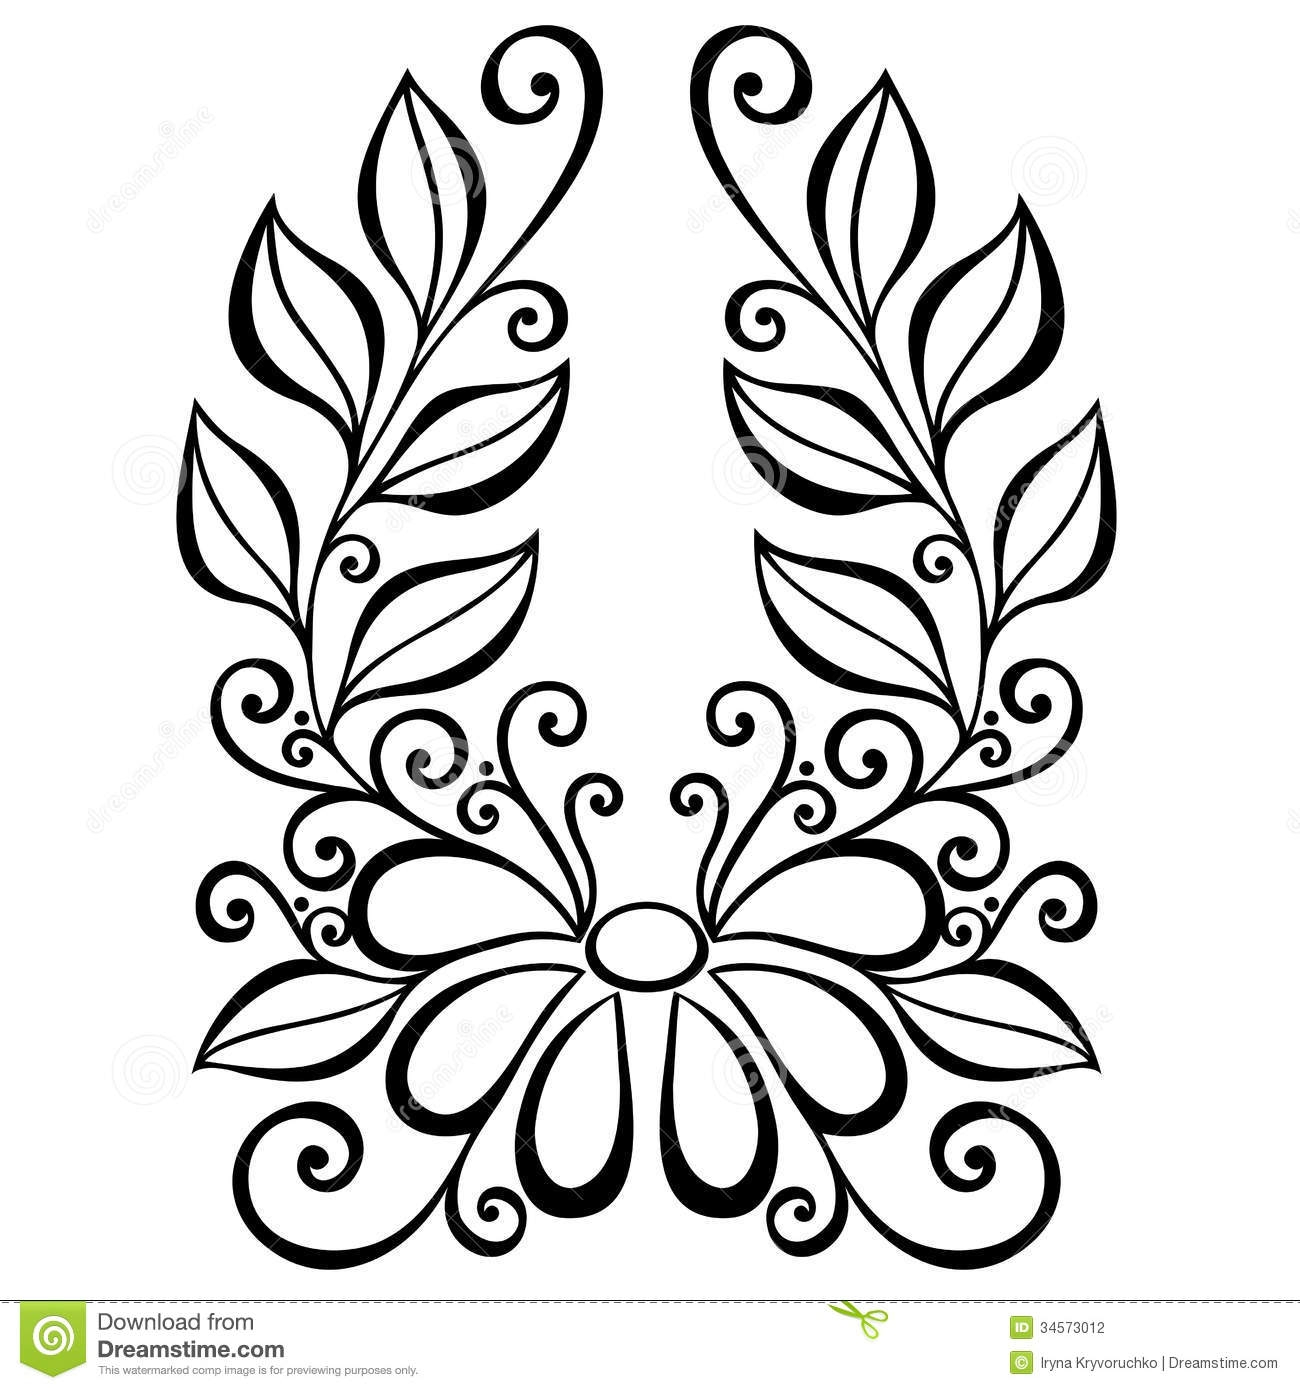 floral coloring pages - stock photography decorative flower leaves beautiful vector patterned design image